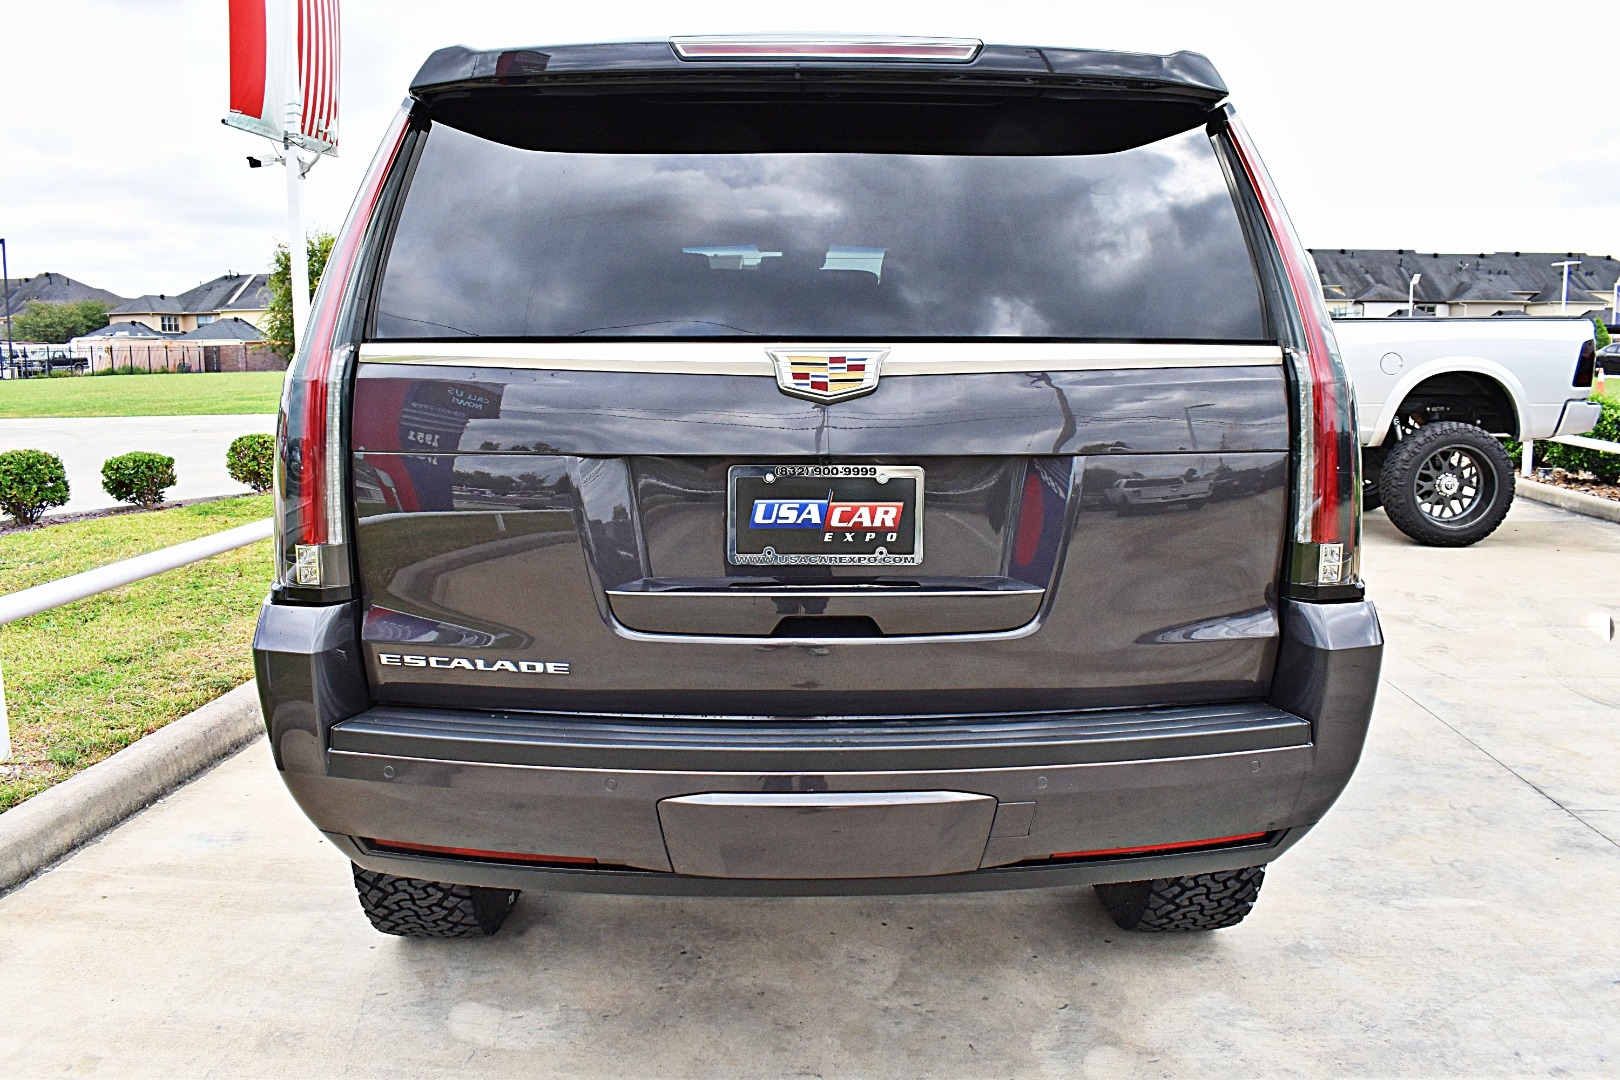 2016 cadillac escalade esv platinum 4x4 lifted usa car expo dealership in houston 2016 cadillac escalade esv platinum 4x4 lifted